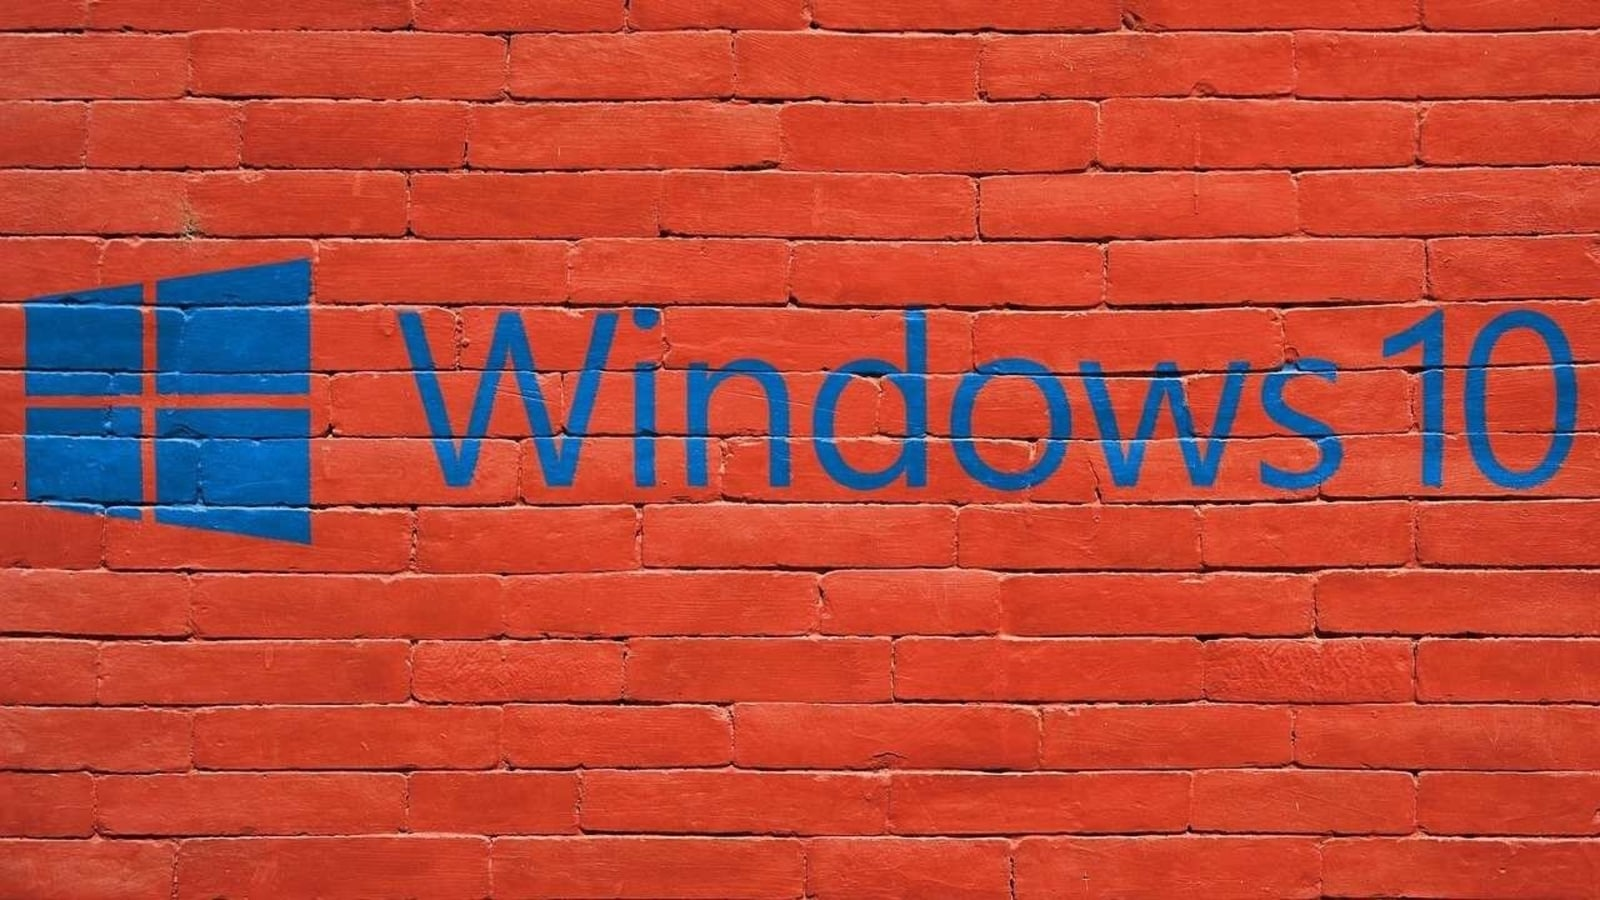 Microsoft fixes Windows 10 drive corrupt vulnerability with latest update - HT Tech